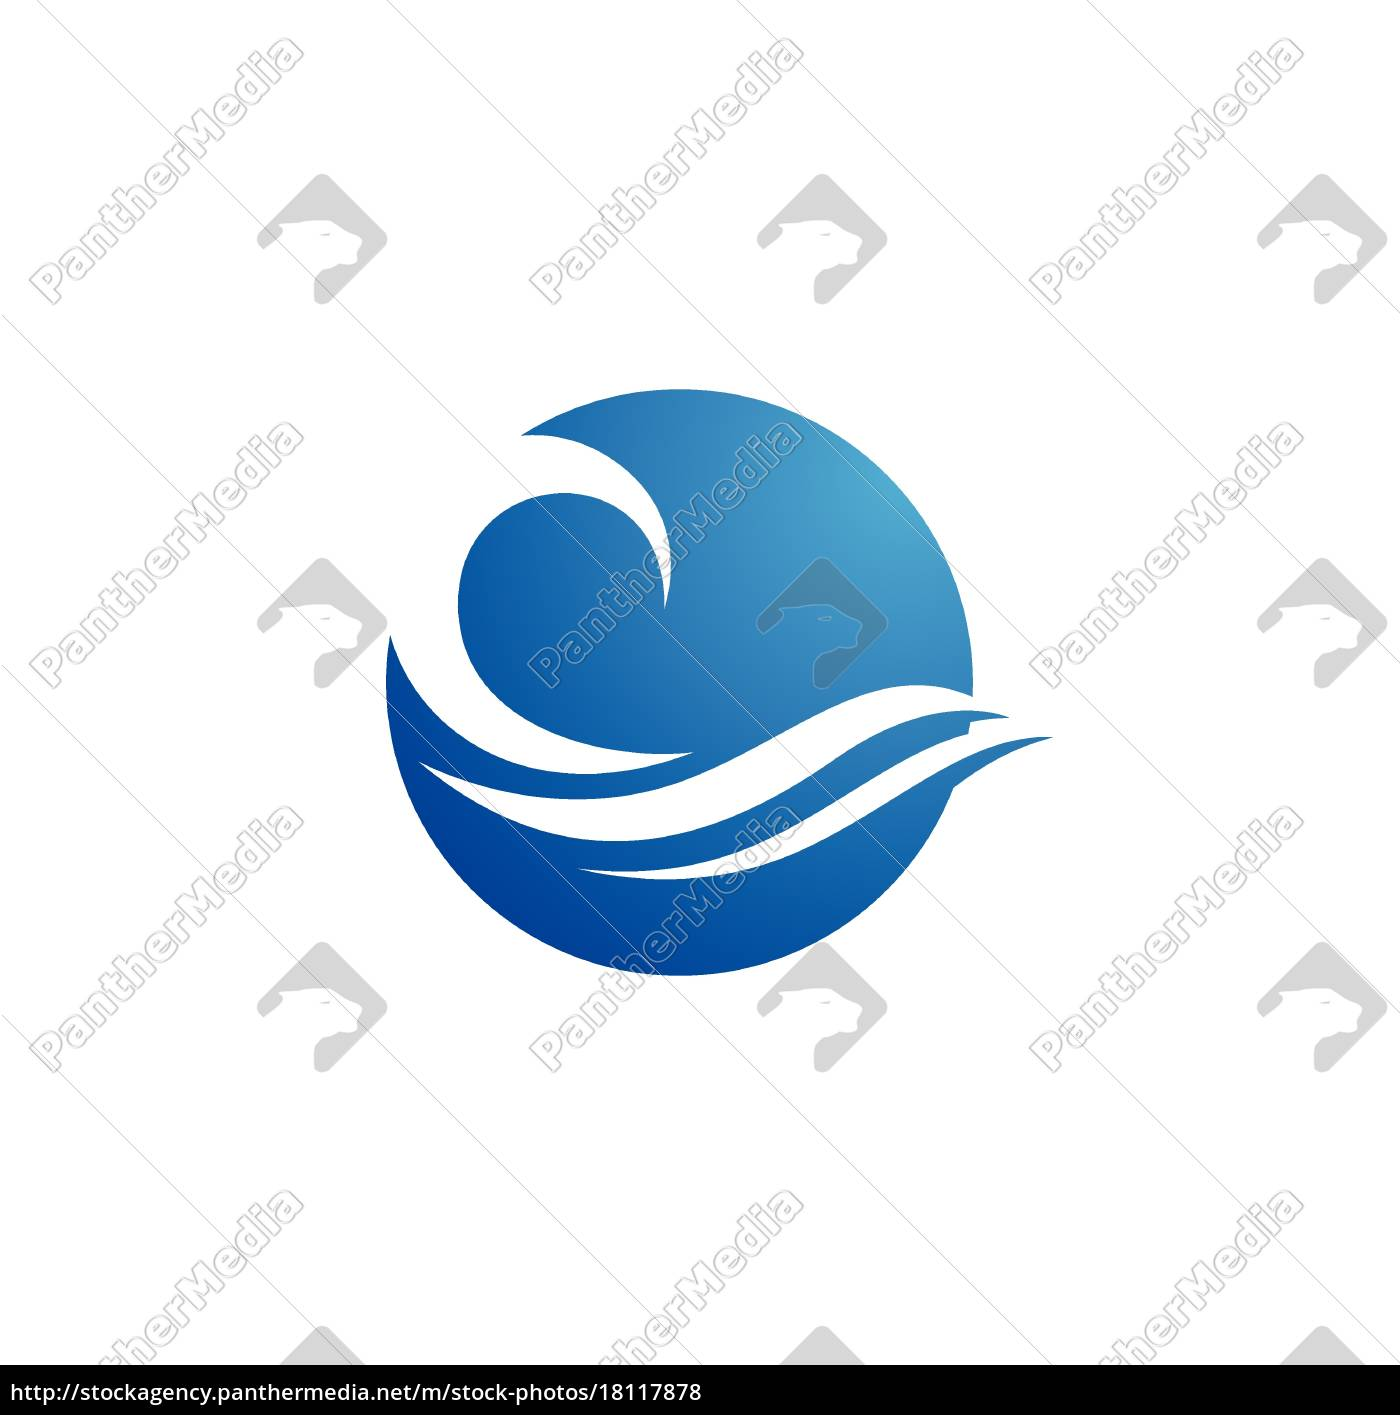 water, wave, logo, template - 18117878